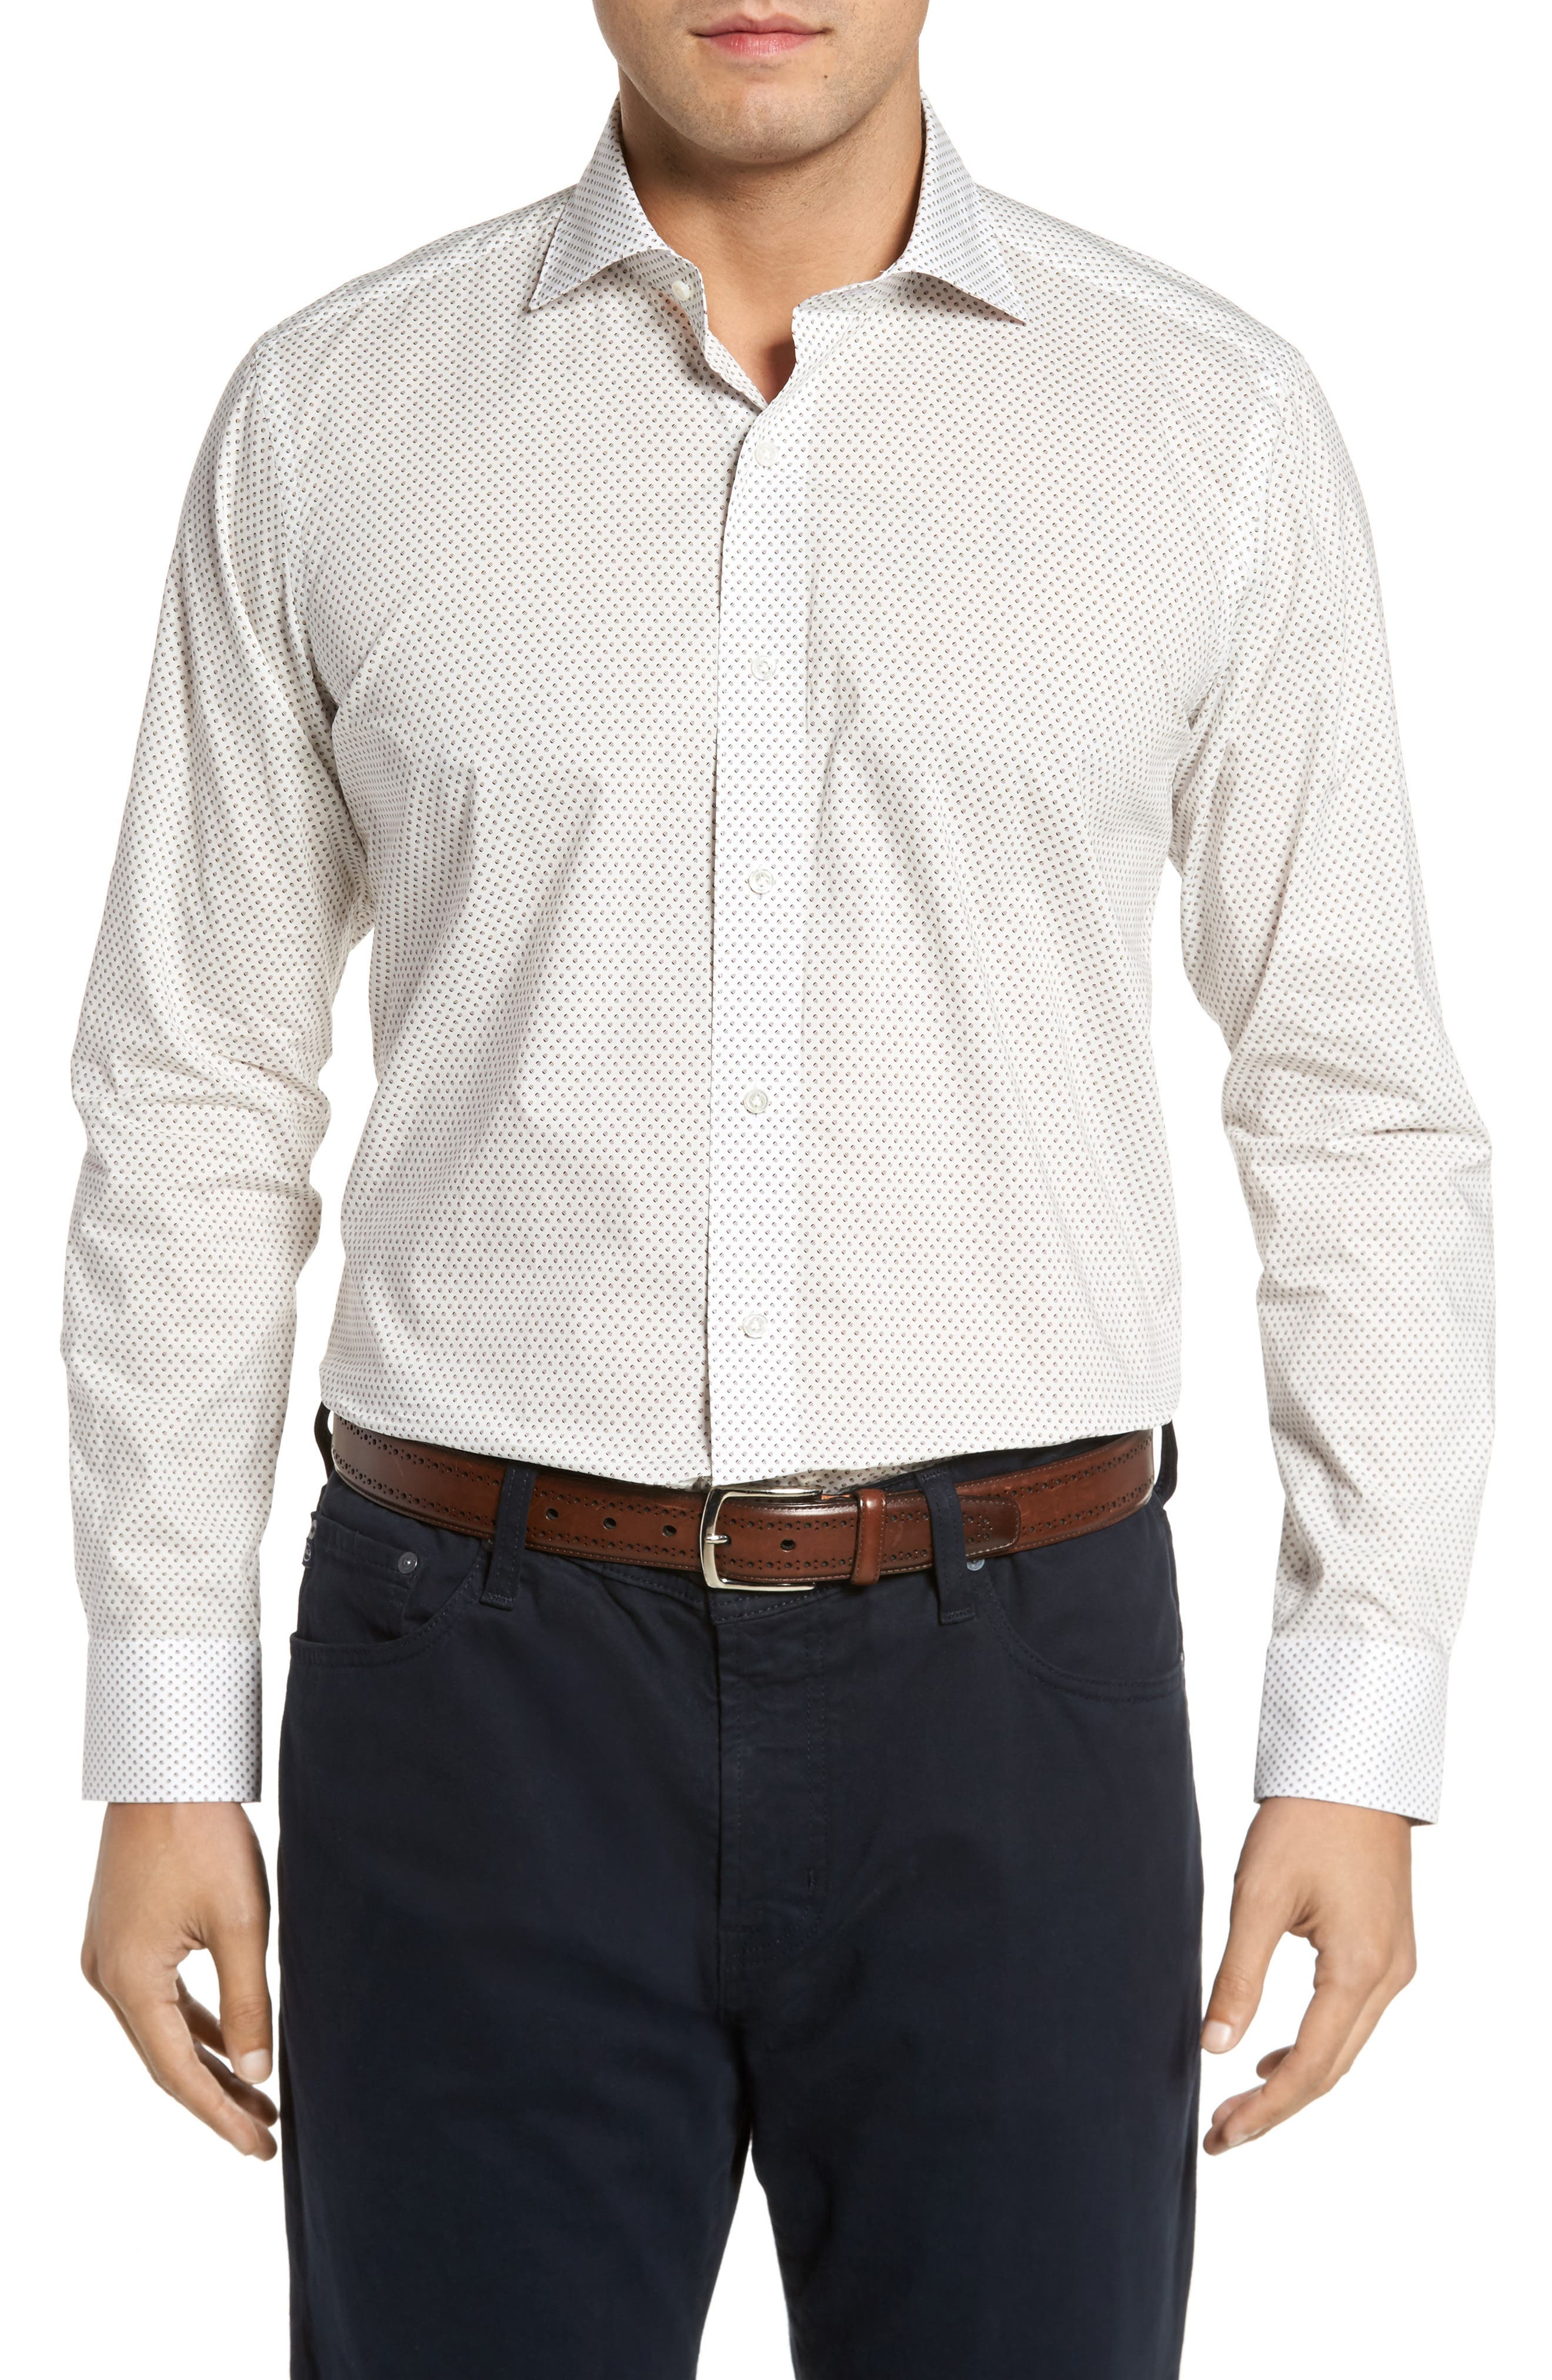 Alternate Image 1 Selected - Peter Millar Collection Desert Dot Print Sport Shirt